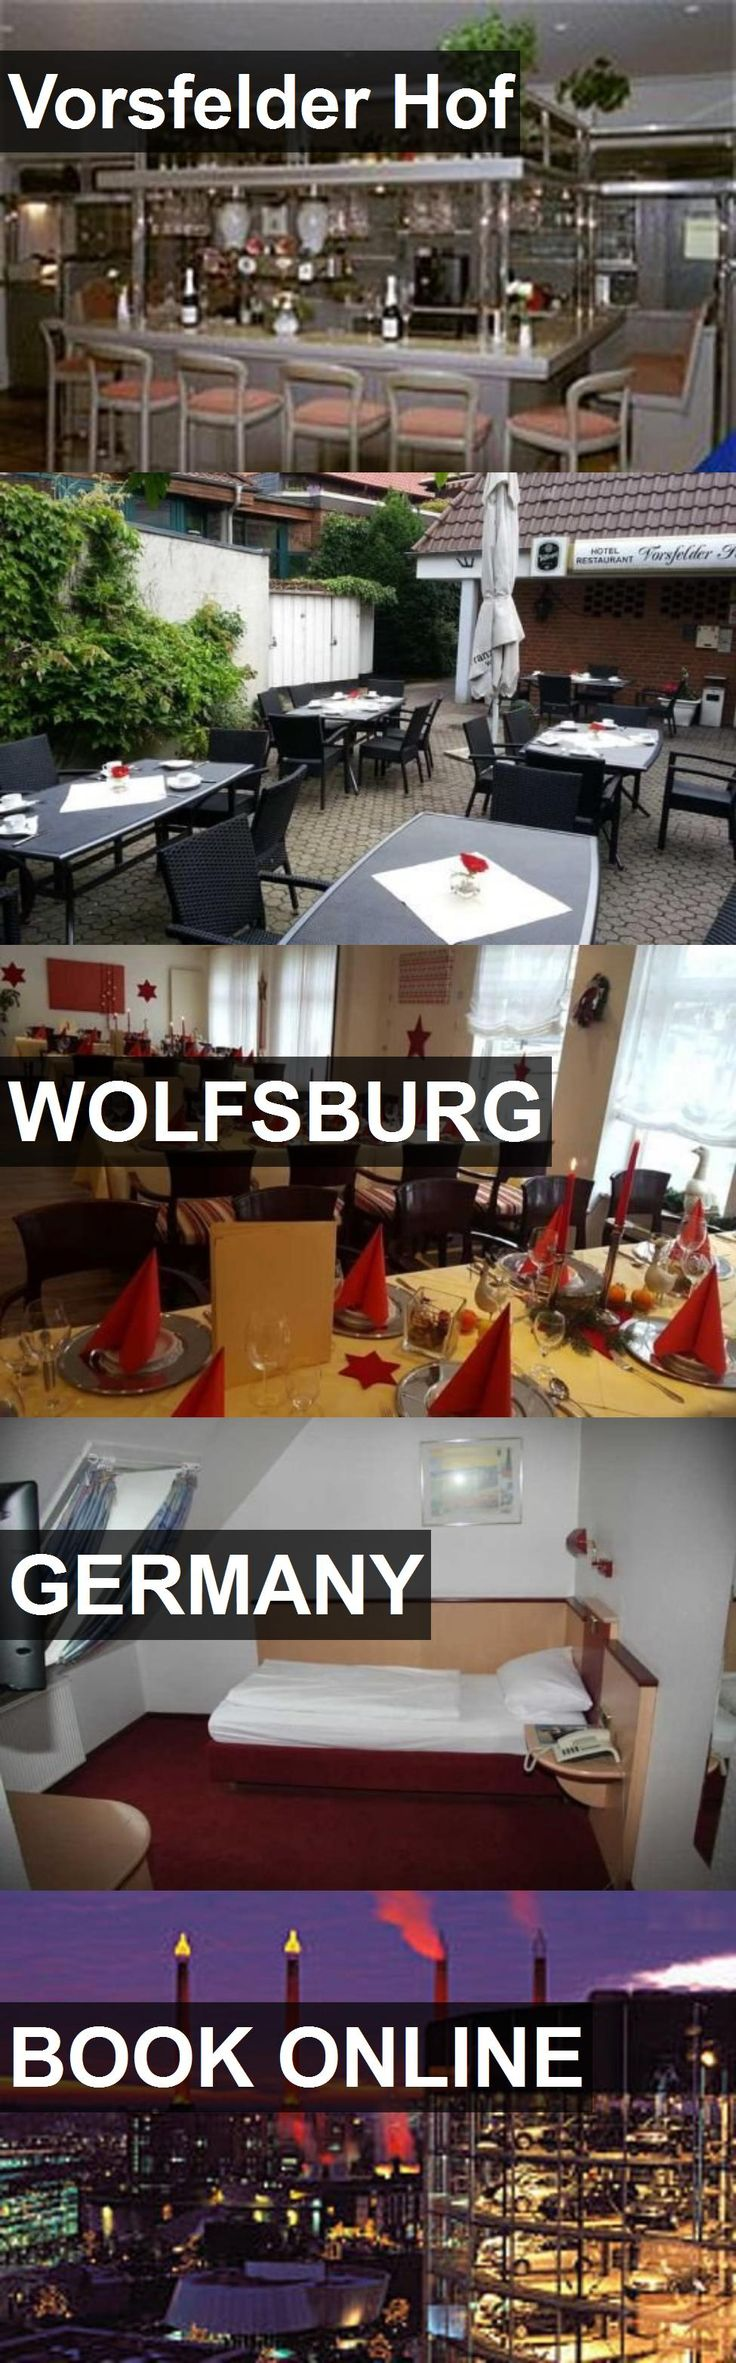 Hotel Vorsfelder Hof in Wolfsburg, Germany. For more information, photos, reviews and best prices please follow the link. #Germany #Wolfsburg #travel #vacation #hotel